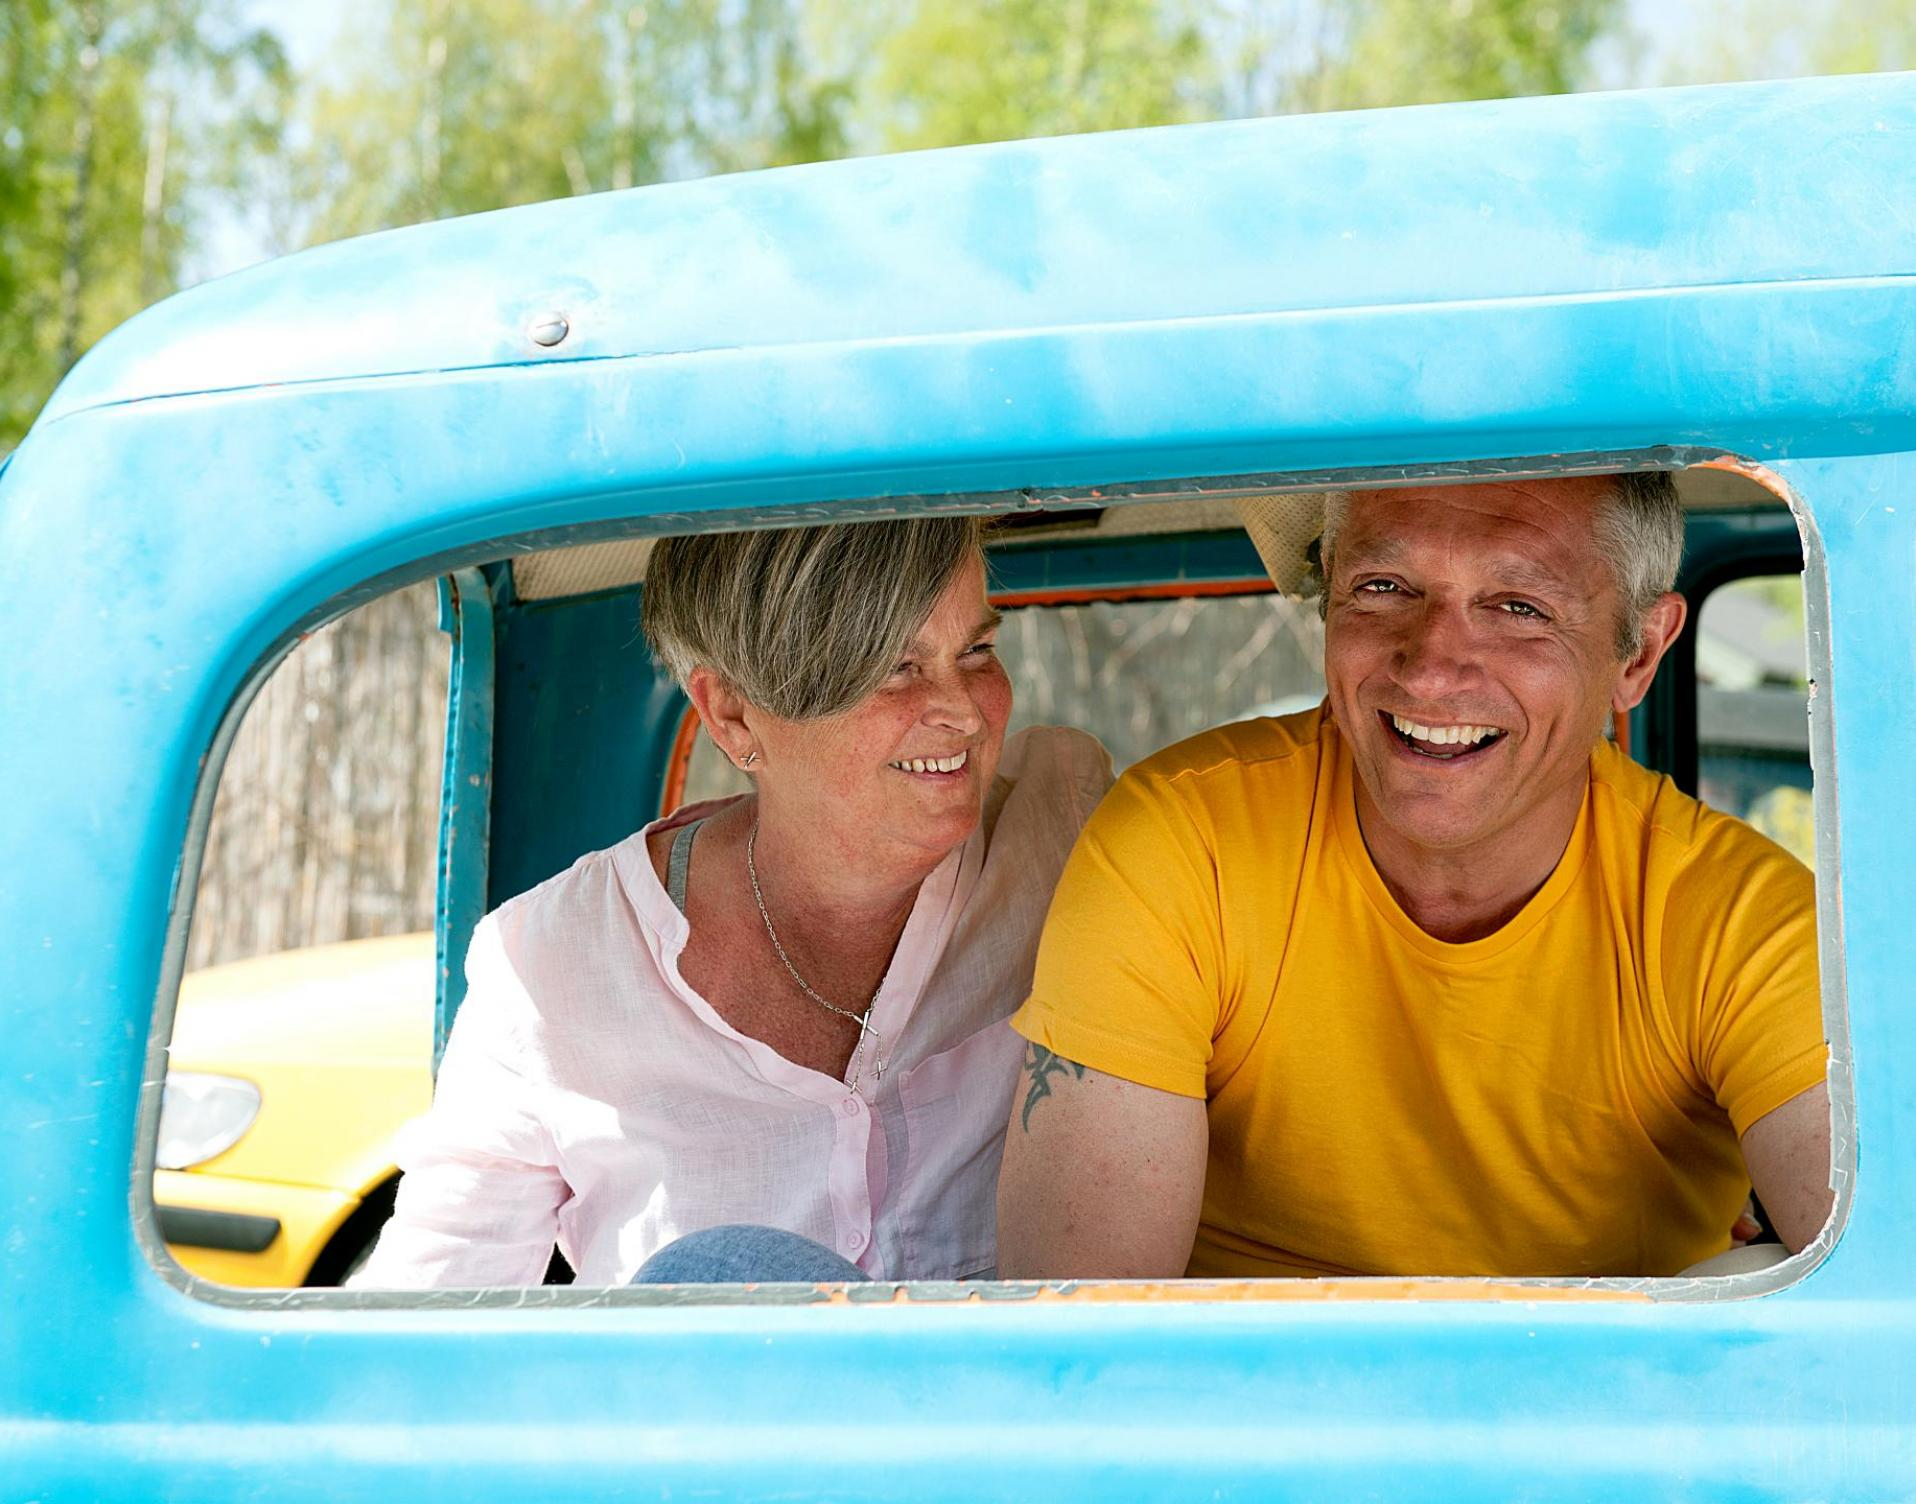 Juan and Monica in a vehicle